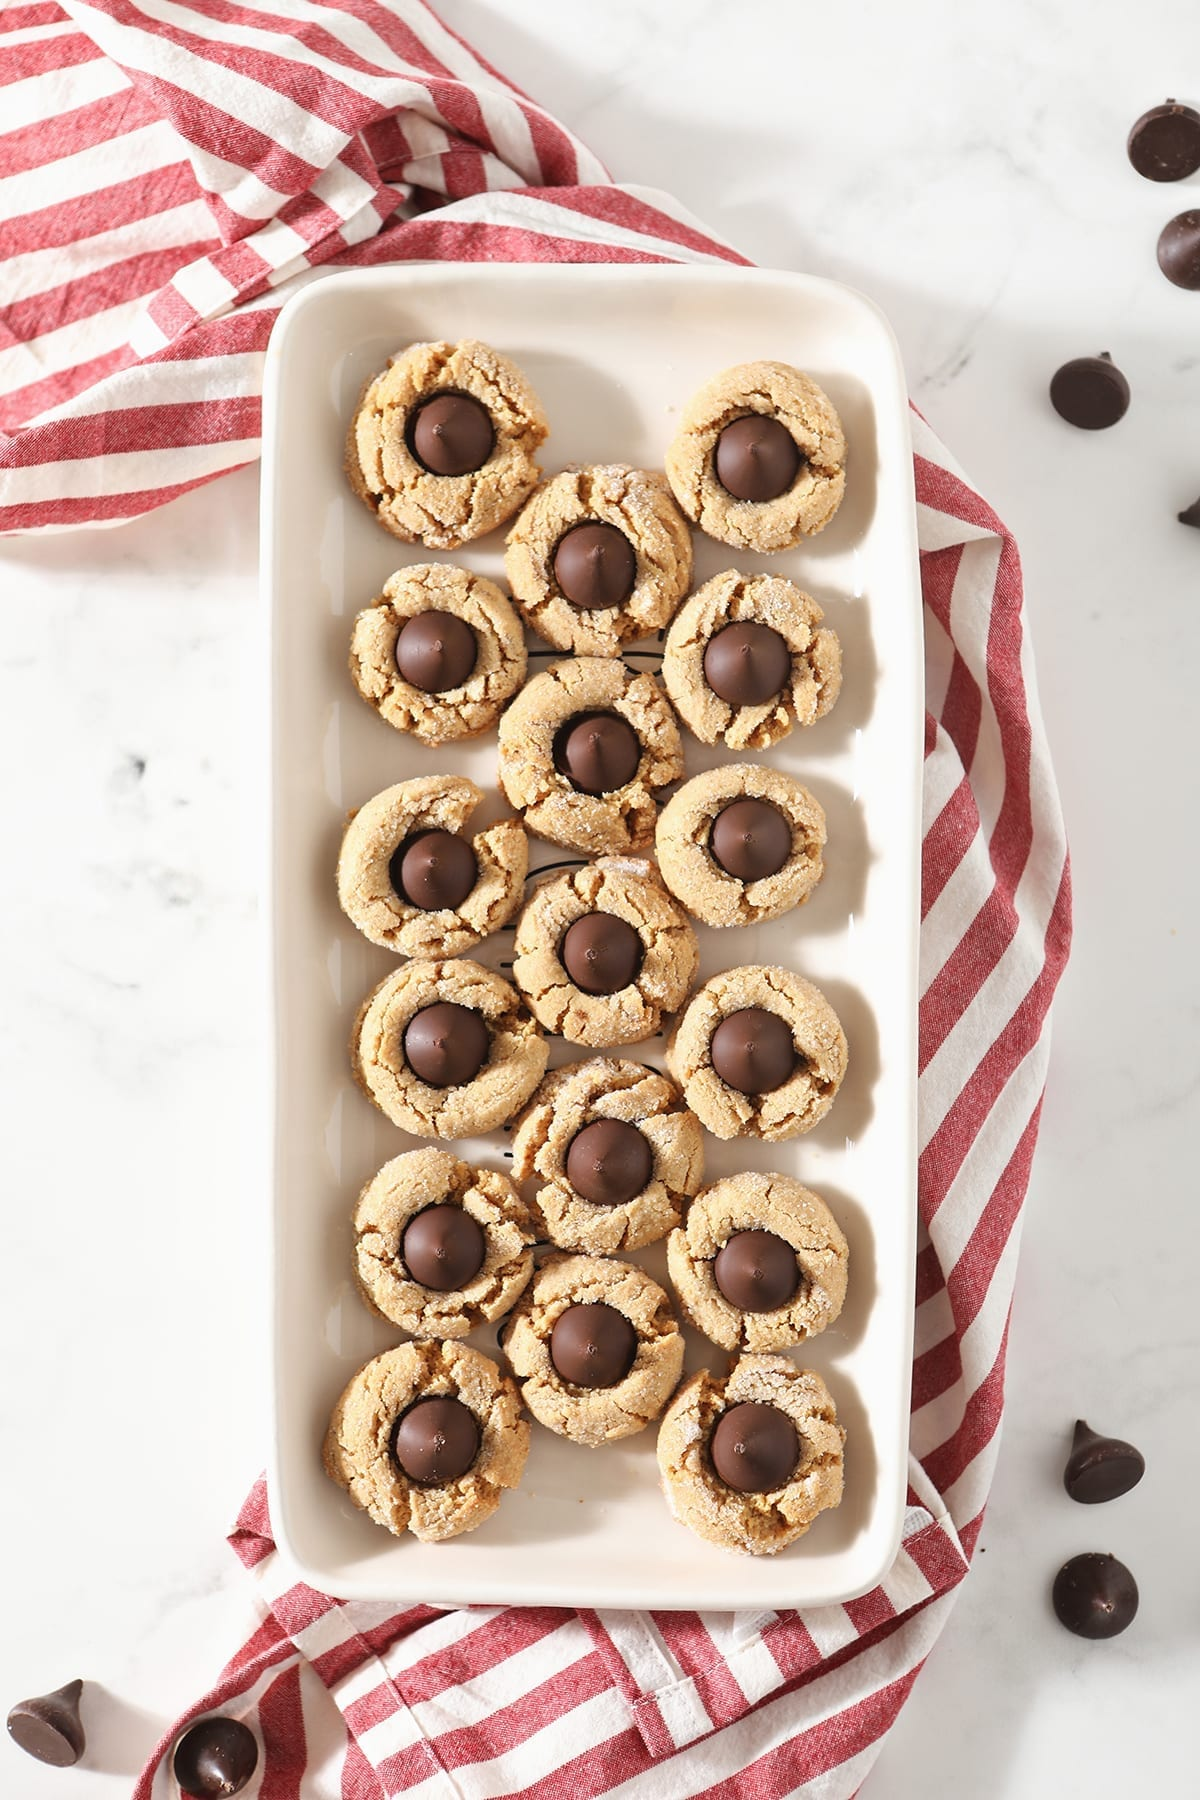 A tray of Dark Chocolate Peanut Blossom Cookies from above sitting on top of a red and white striped towel on a marble countertop